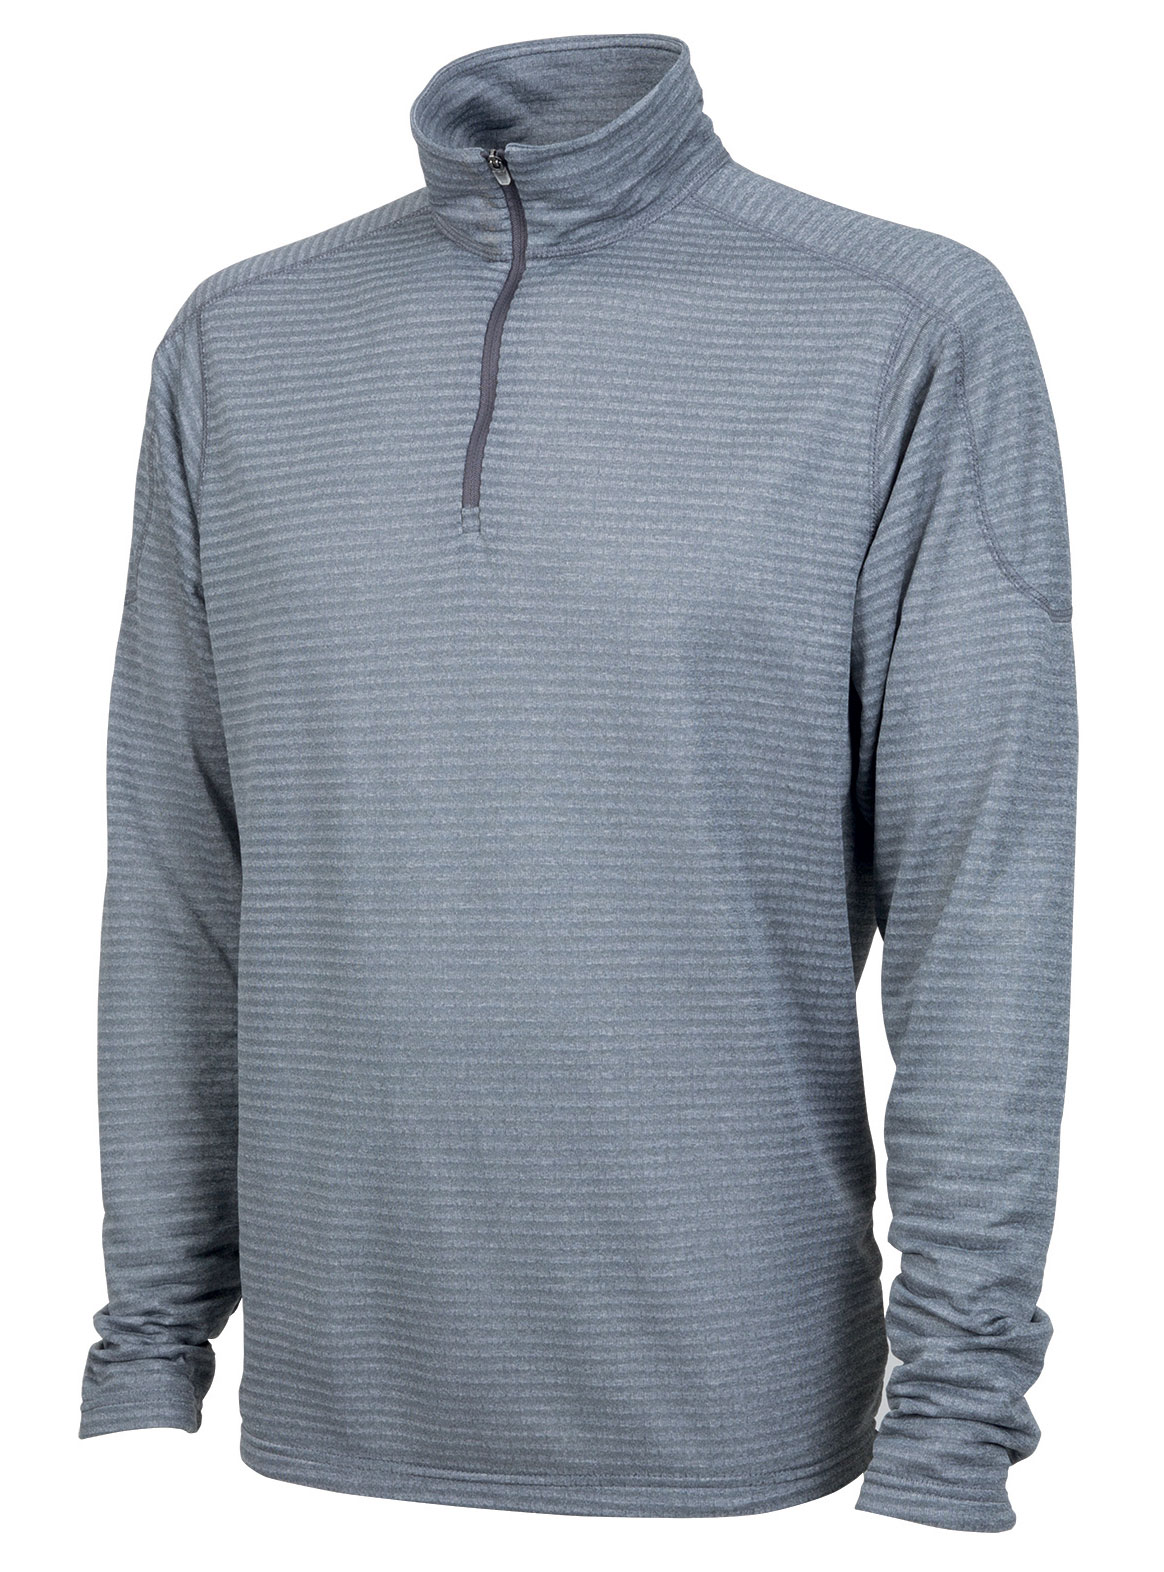 Mens Crossover Pullover by Charles River